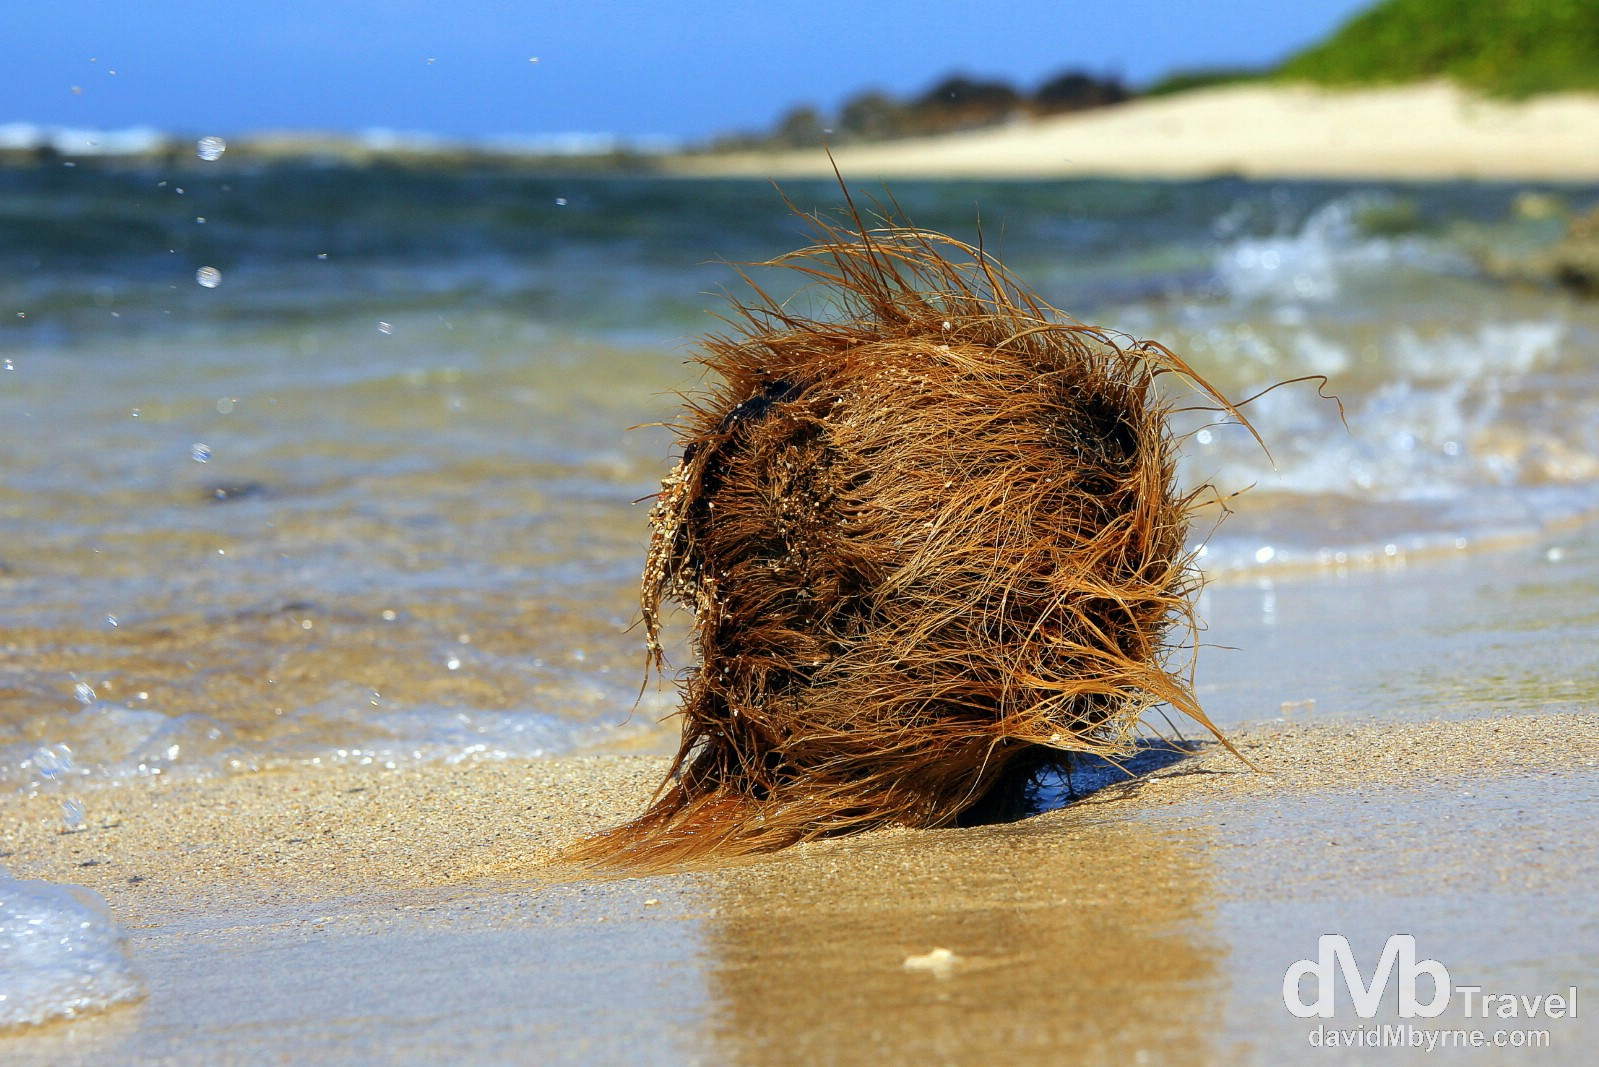 A coconut being jostled by the waves on the north shore of Utila, Bay Islands, Honduras. June 10th 2013.